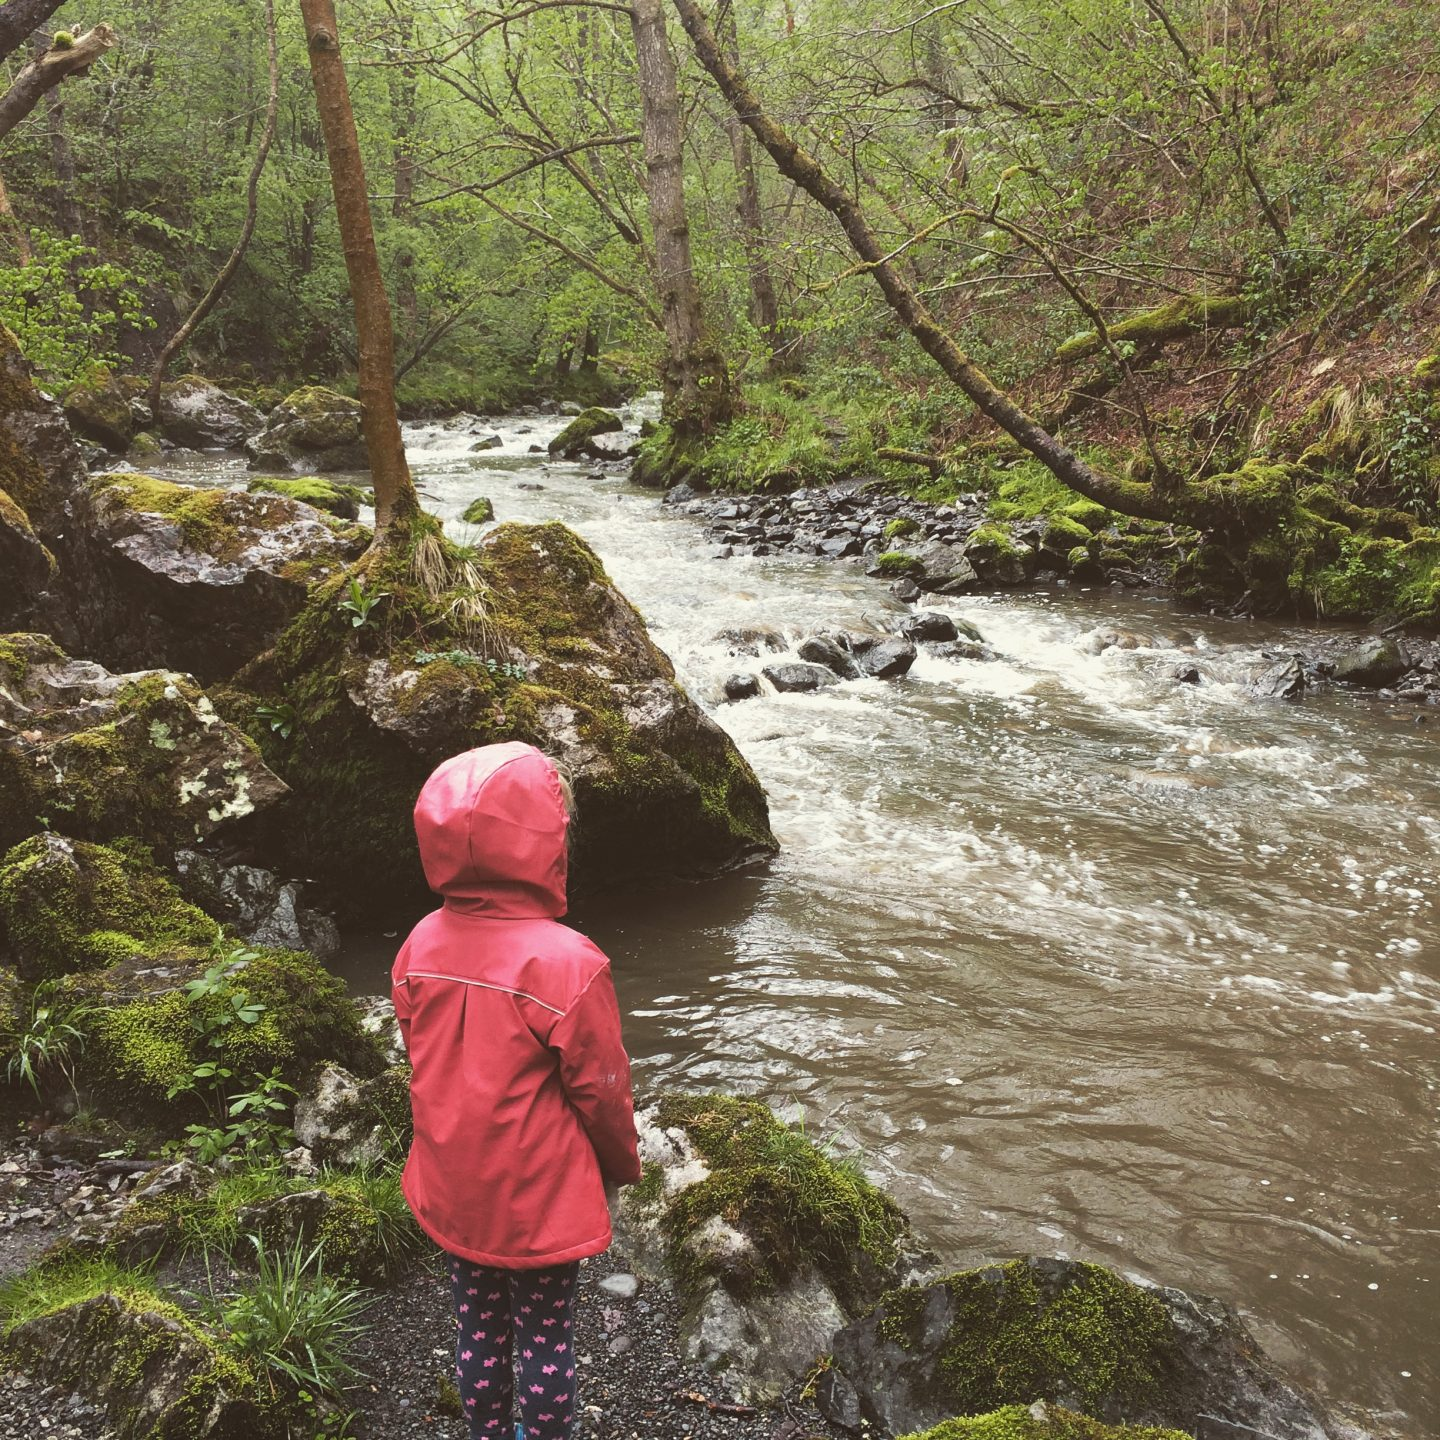 Adventures in Wales: Gorge Walking